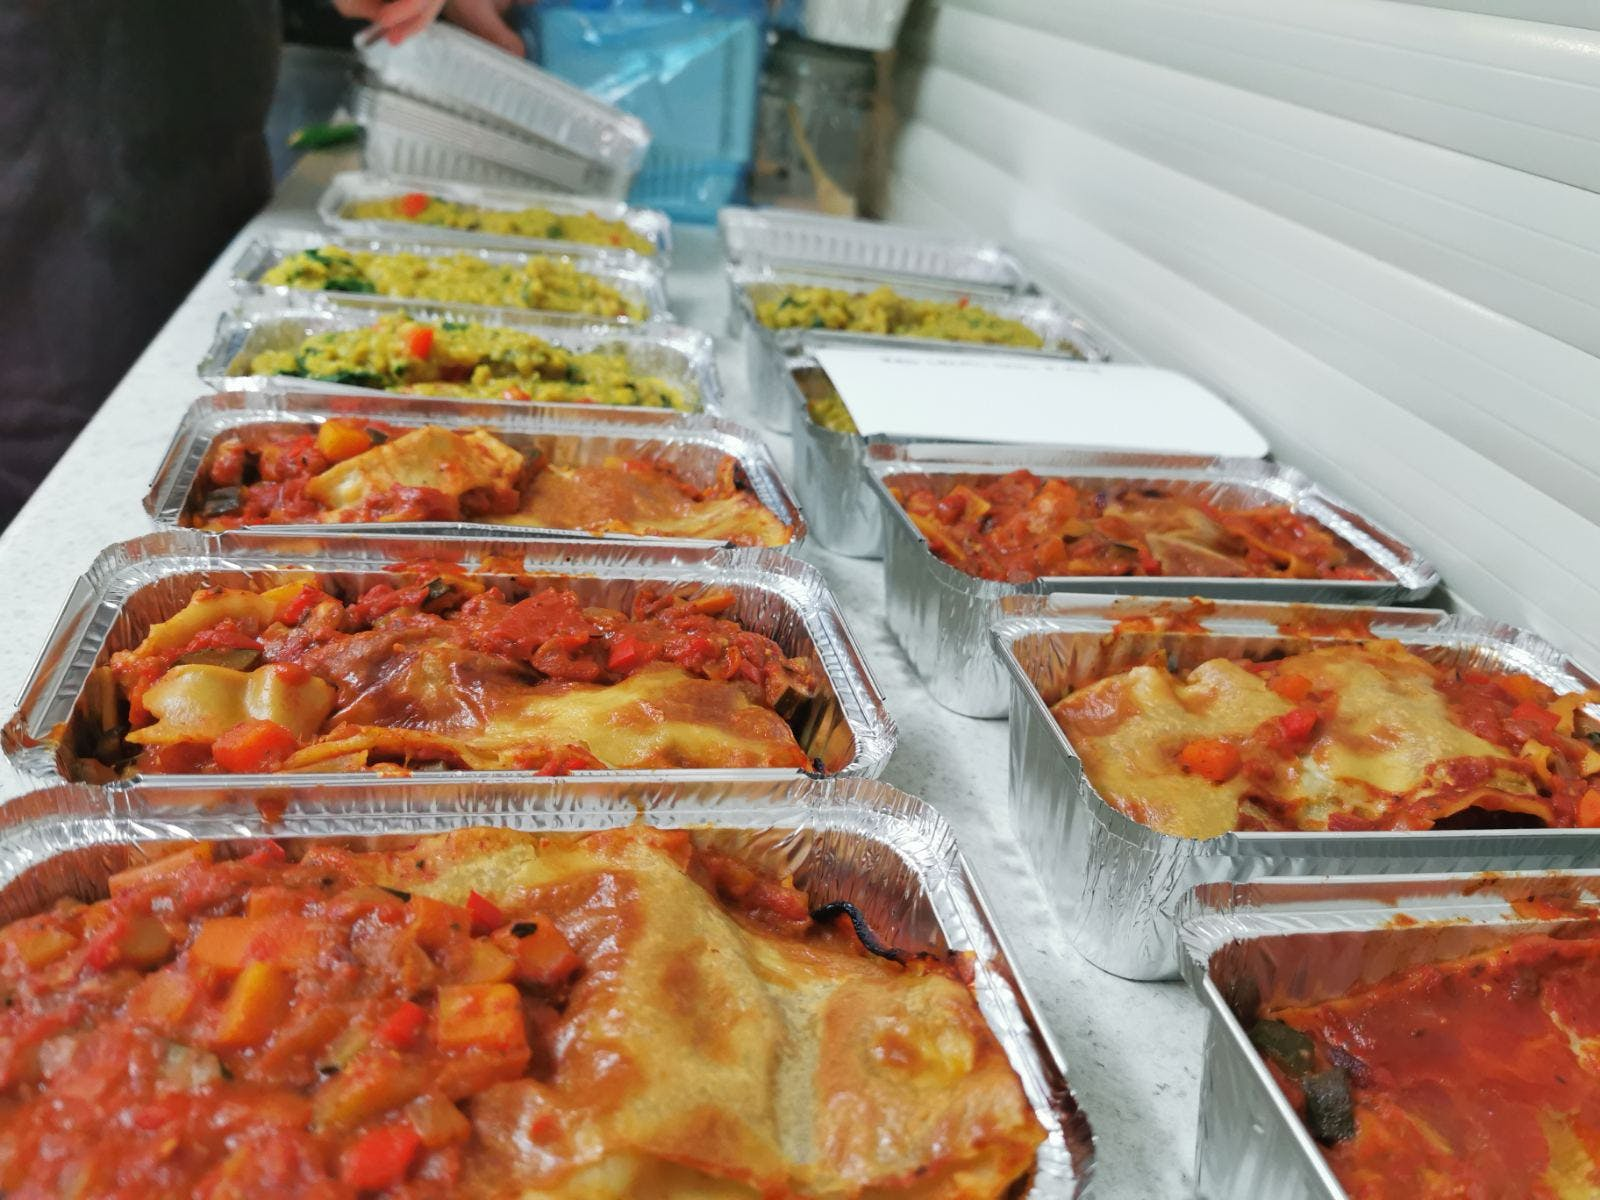 Rows of plant-based Beehive meals ready to deliver around Melbourne